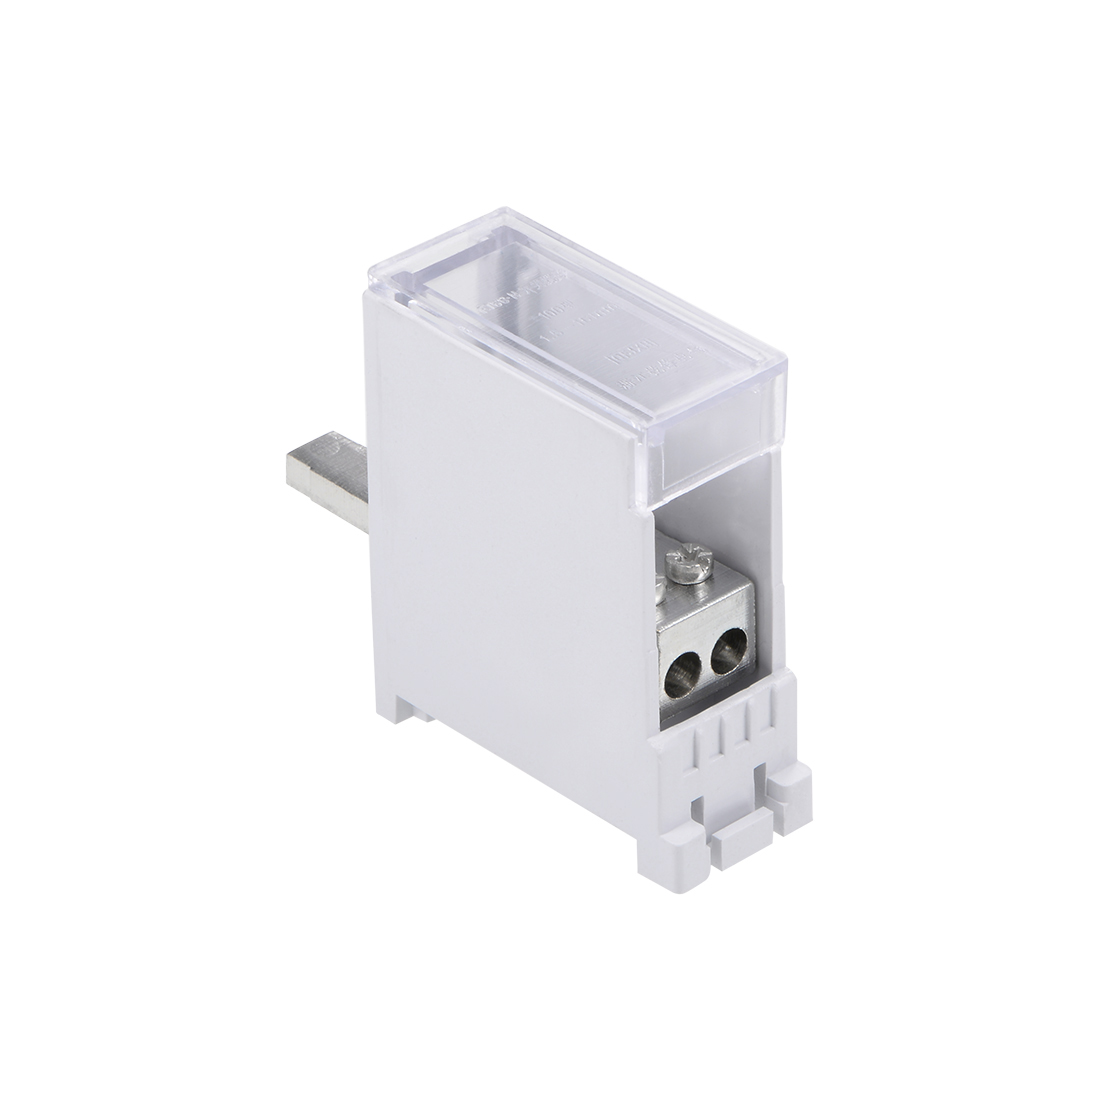 1 Inlet 2 Outlet Terminal Blocks DIN Rail Distribution Block for Circuit Breaker